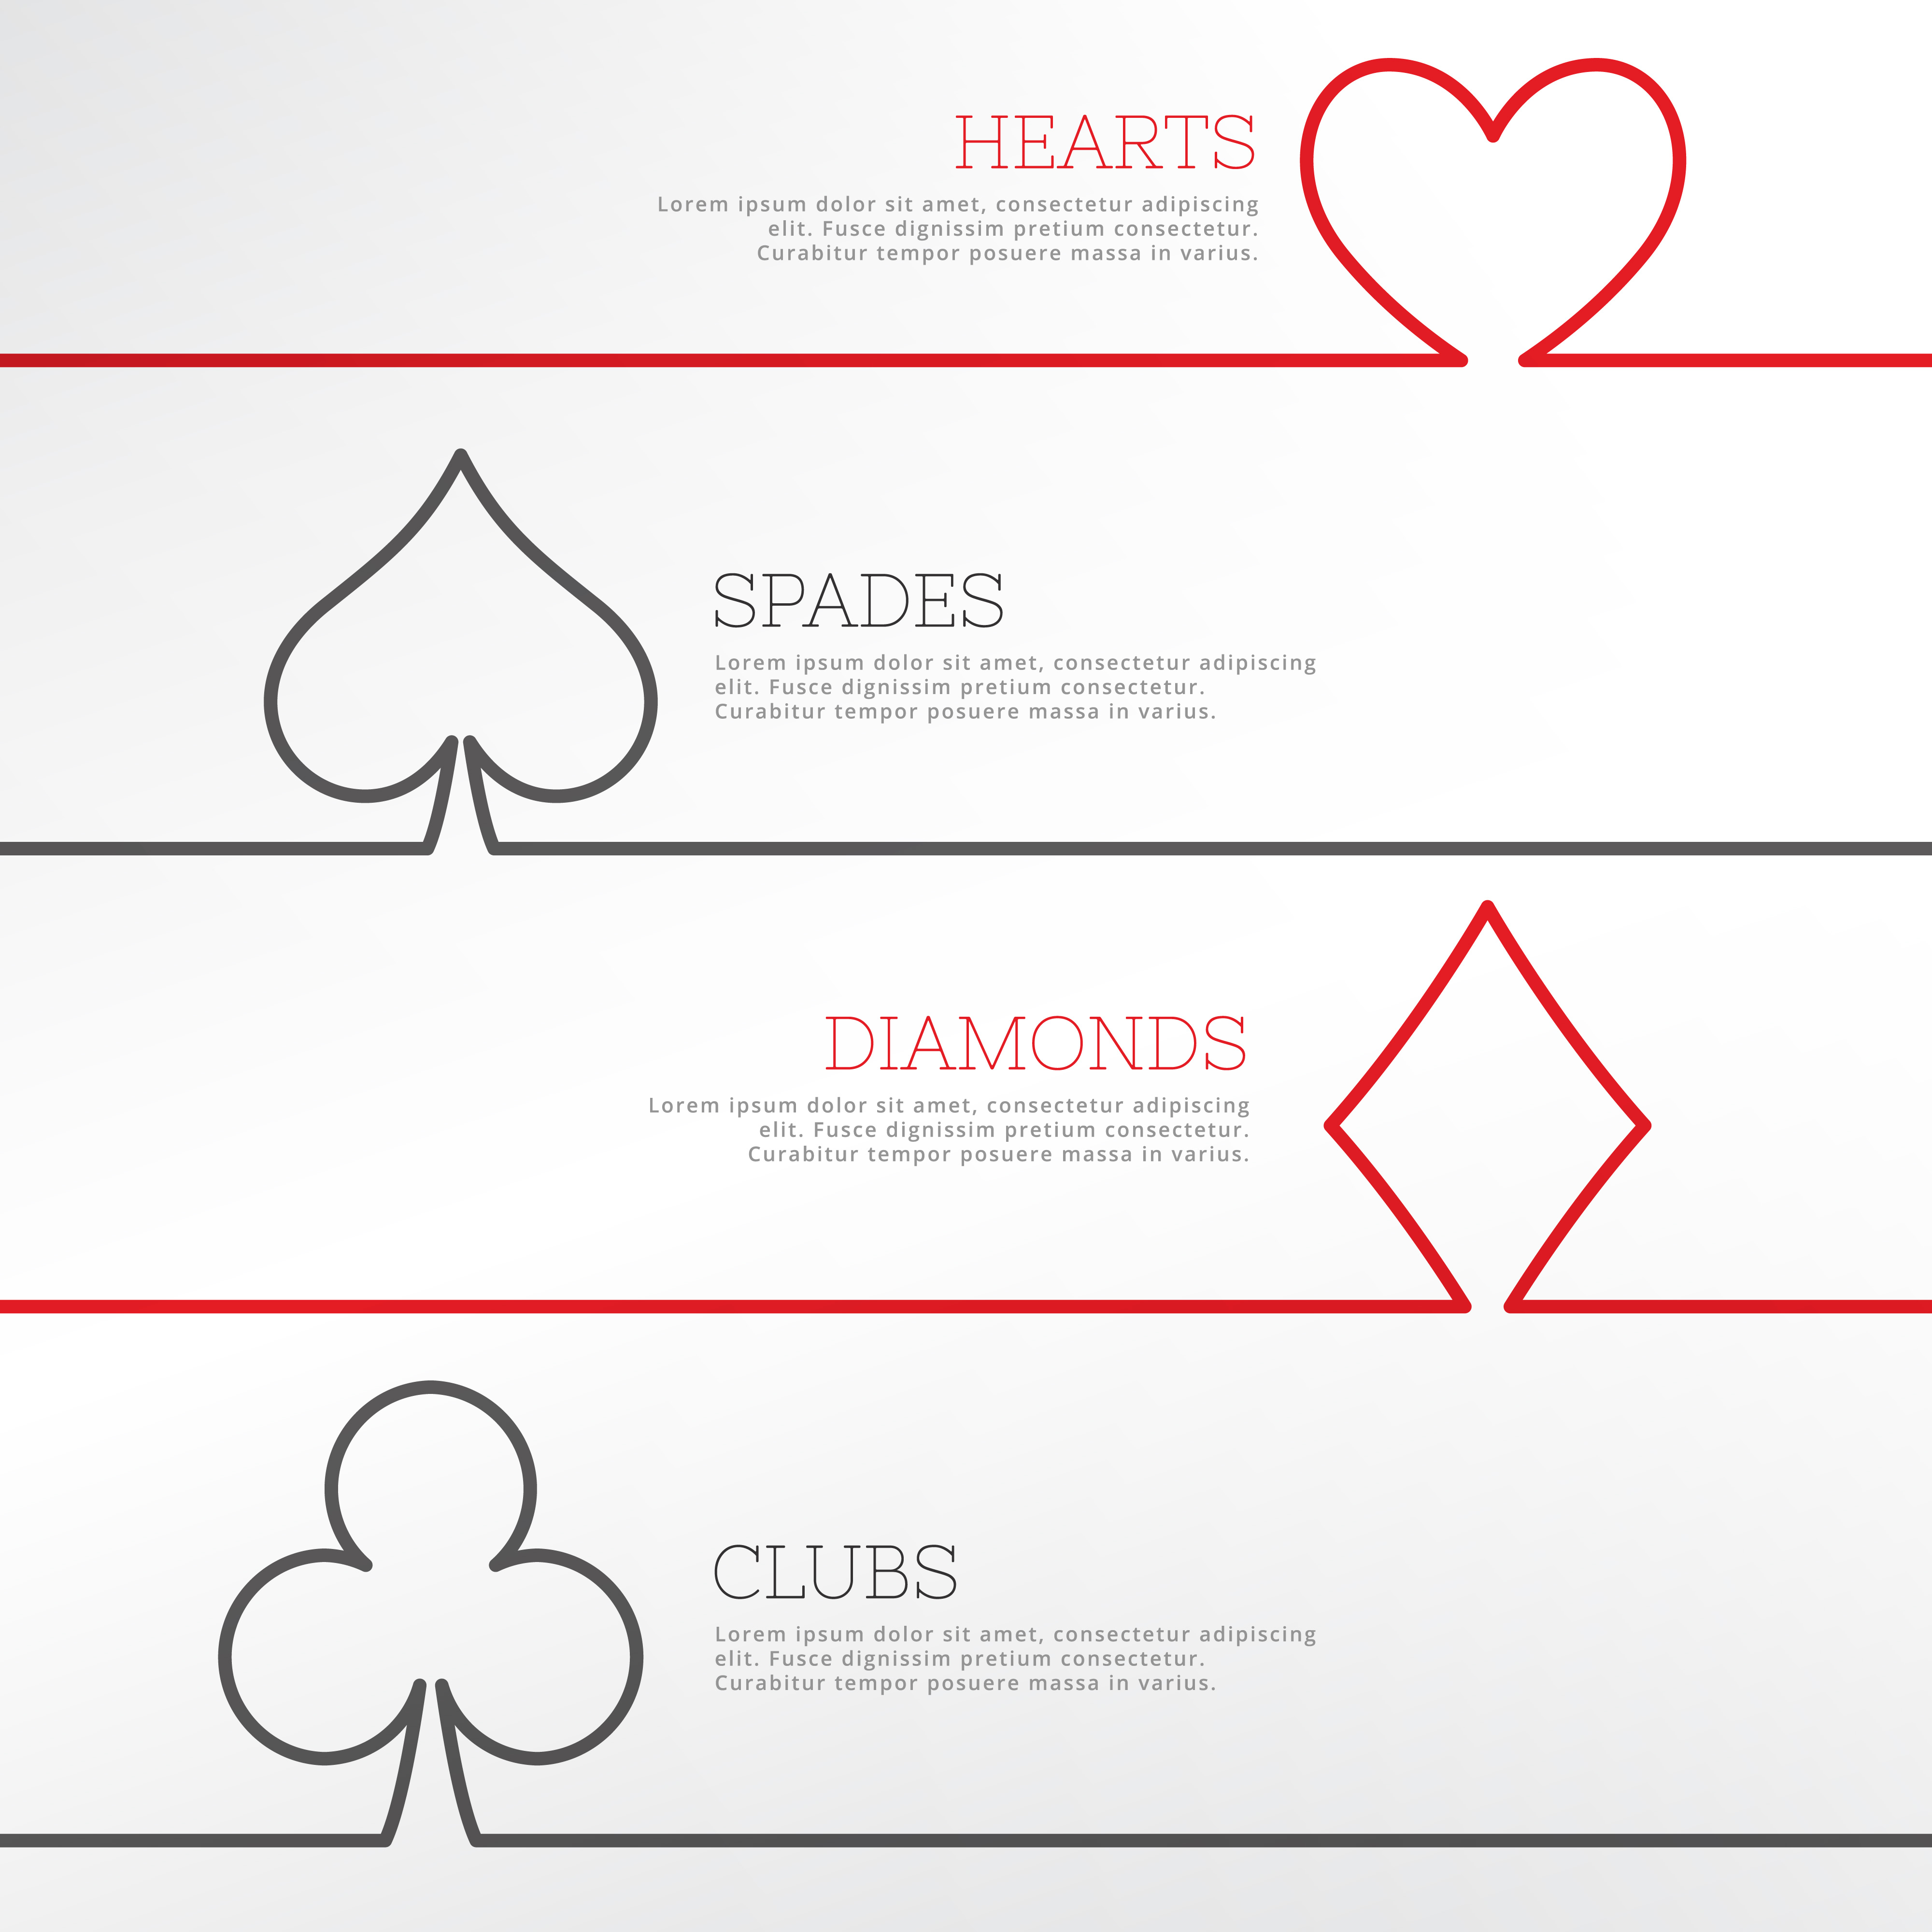 Casino background with playing cards symbols download free casino background with playing cards symbols download free vector art stock graphics images biocorpaavc